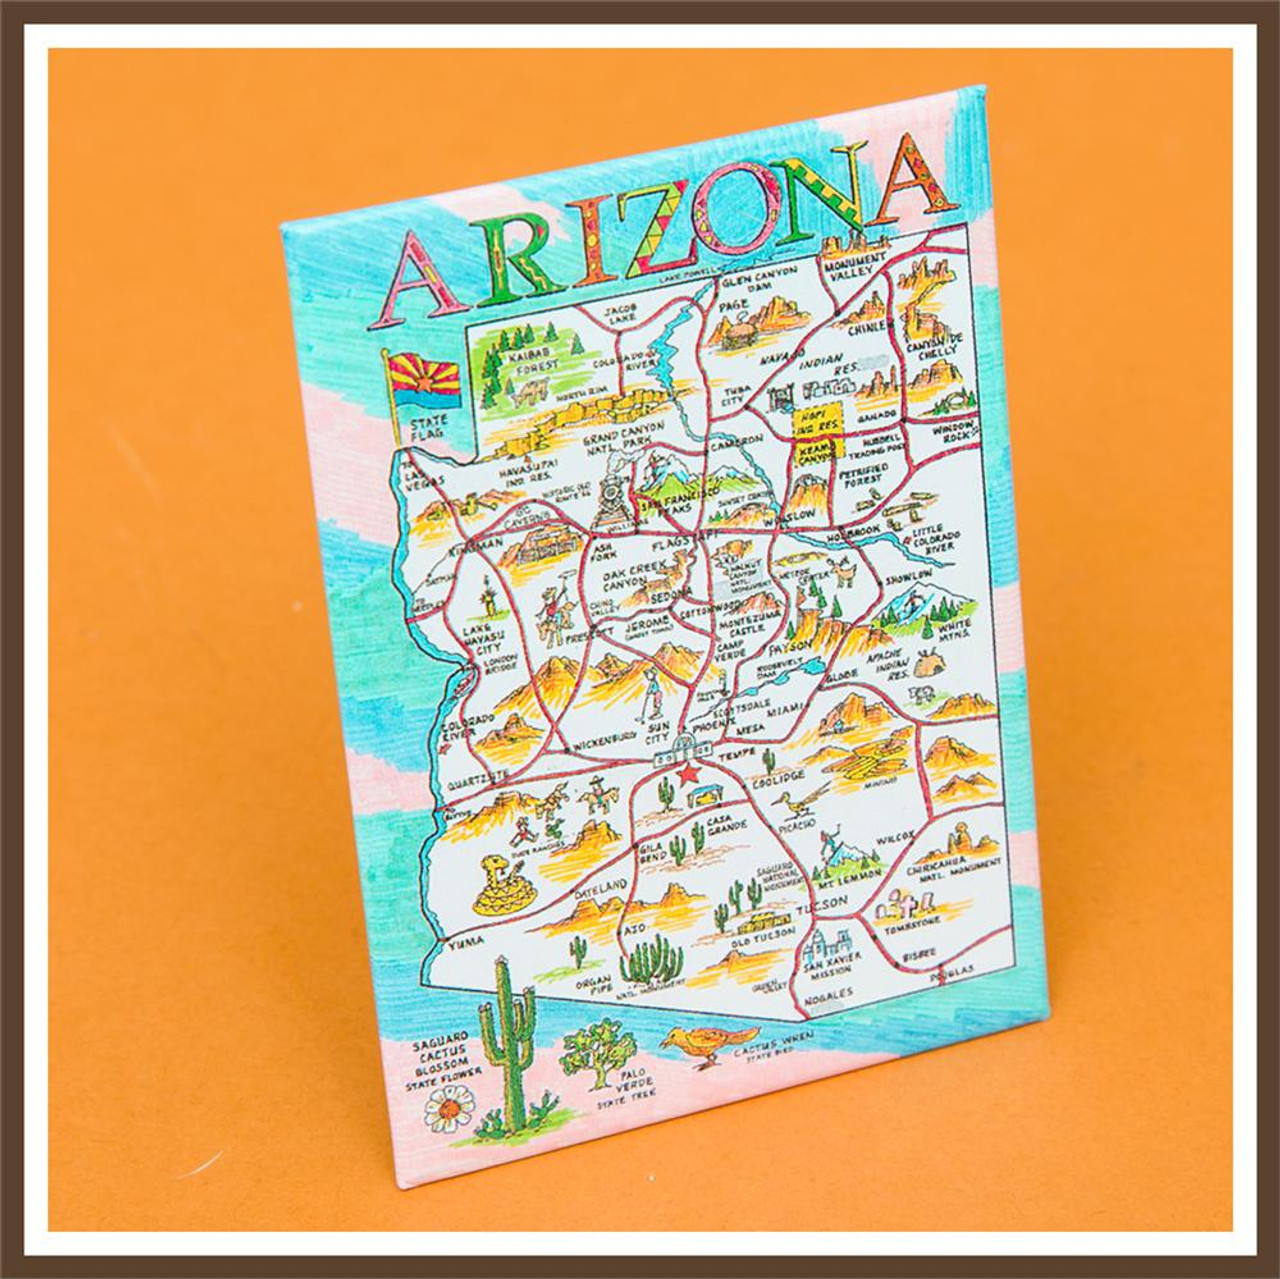 Arizona Map Magnet on map accessories, map books, map pamphlets, map buttons, map pencils, map room decor, map puzzles, map name tags, map furniture, map post cards, map games, map throw blanket, map tools, map dry erase board, map paper, map lettering, map science projects, map invitations, map wall graphic, map watches,